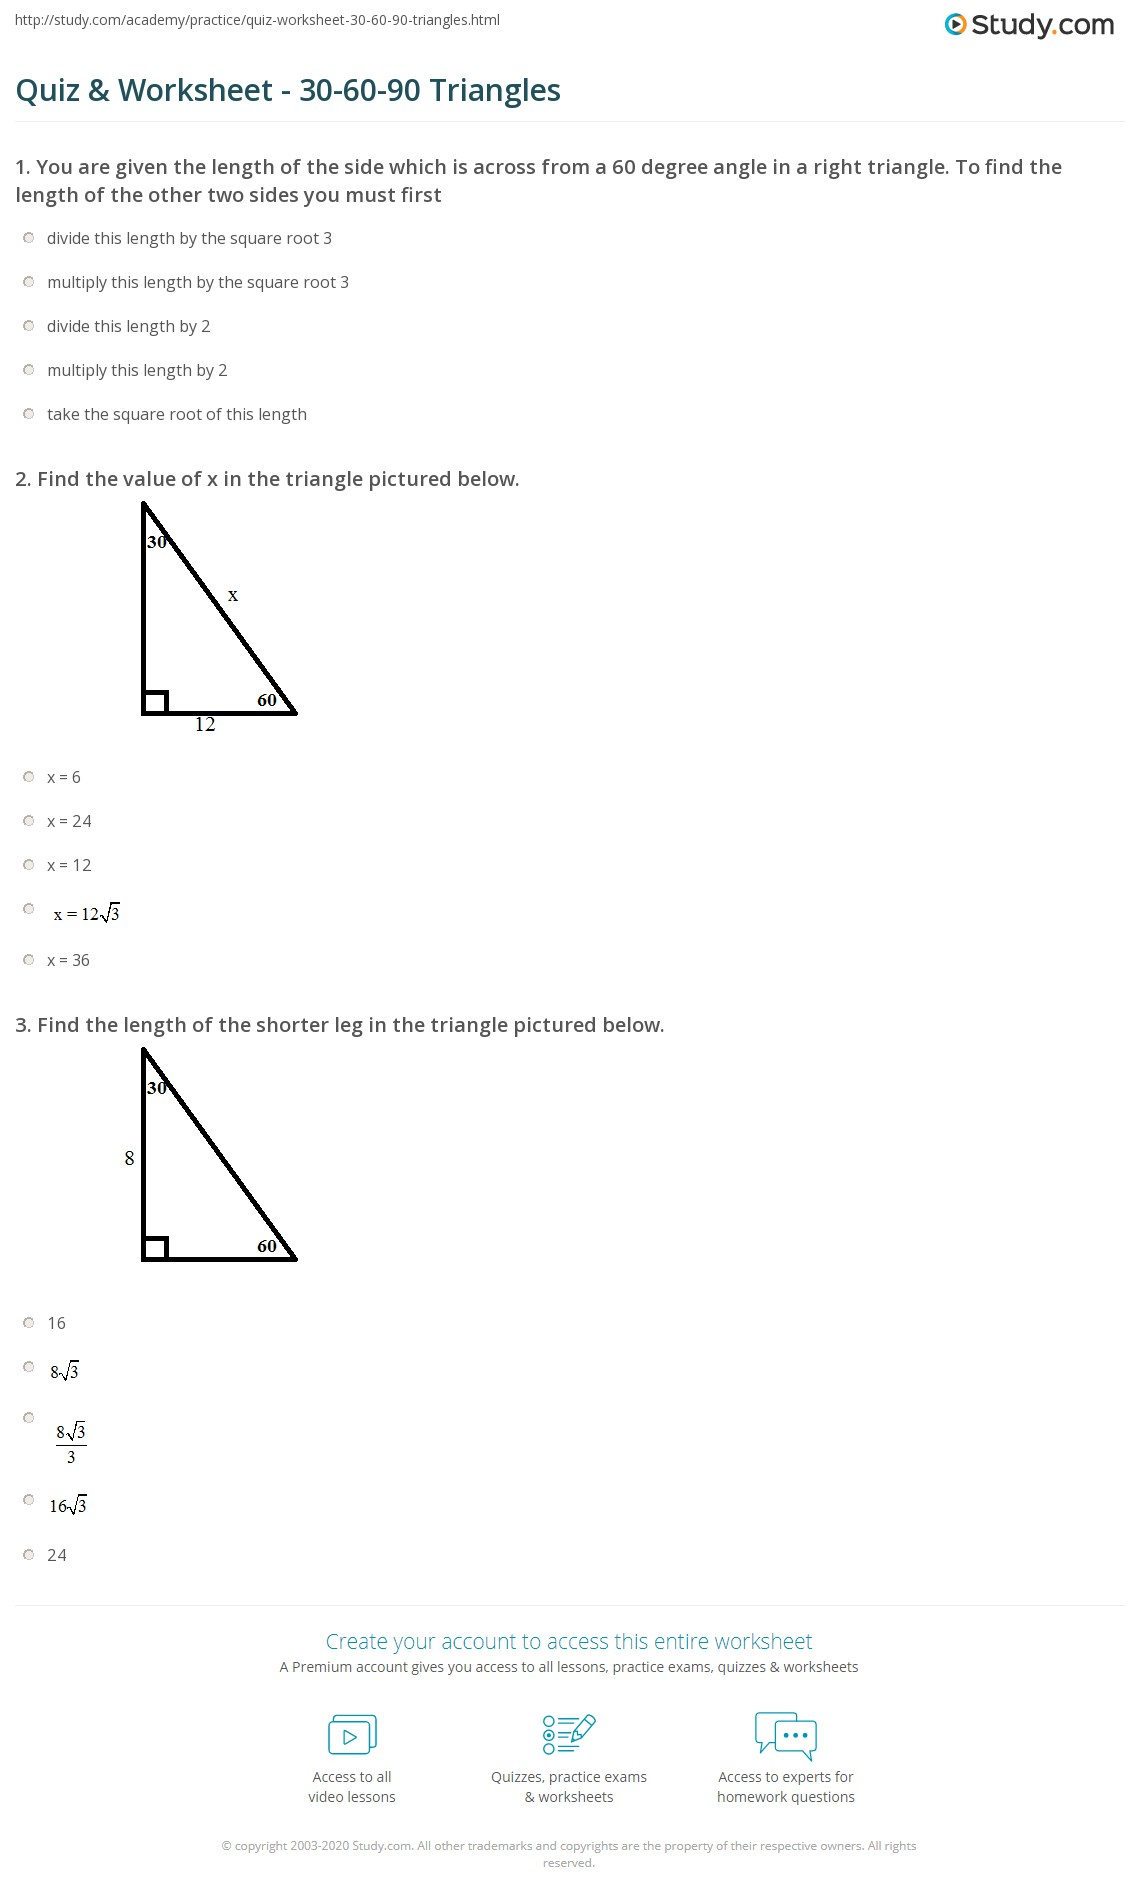 Worksheets Special Right Triangles 45 45 90 Worksheet quiz worksheet 30 60 90 triangles study com print triangle theorem properties formula worksheet